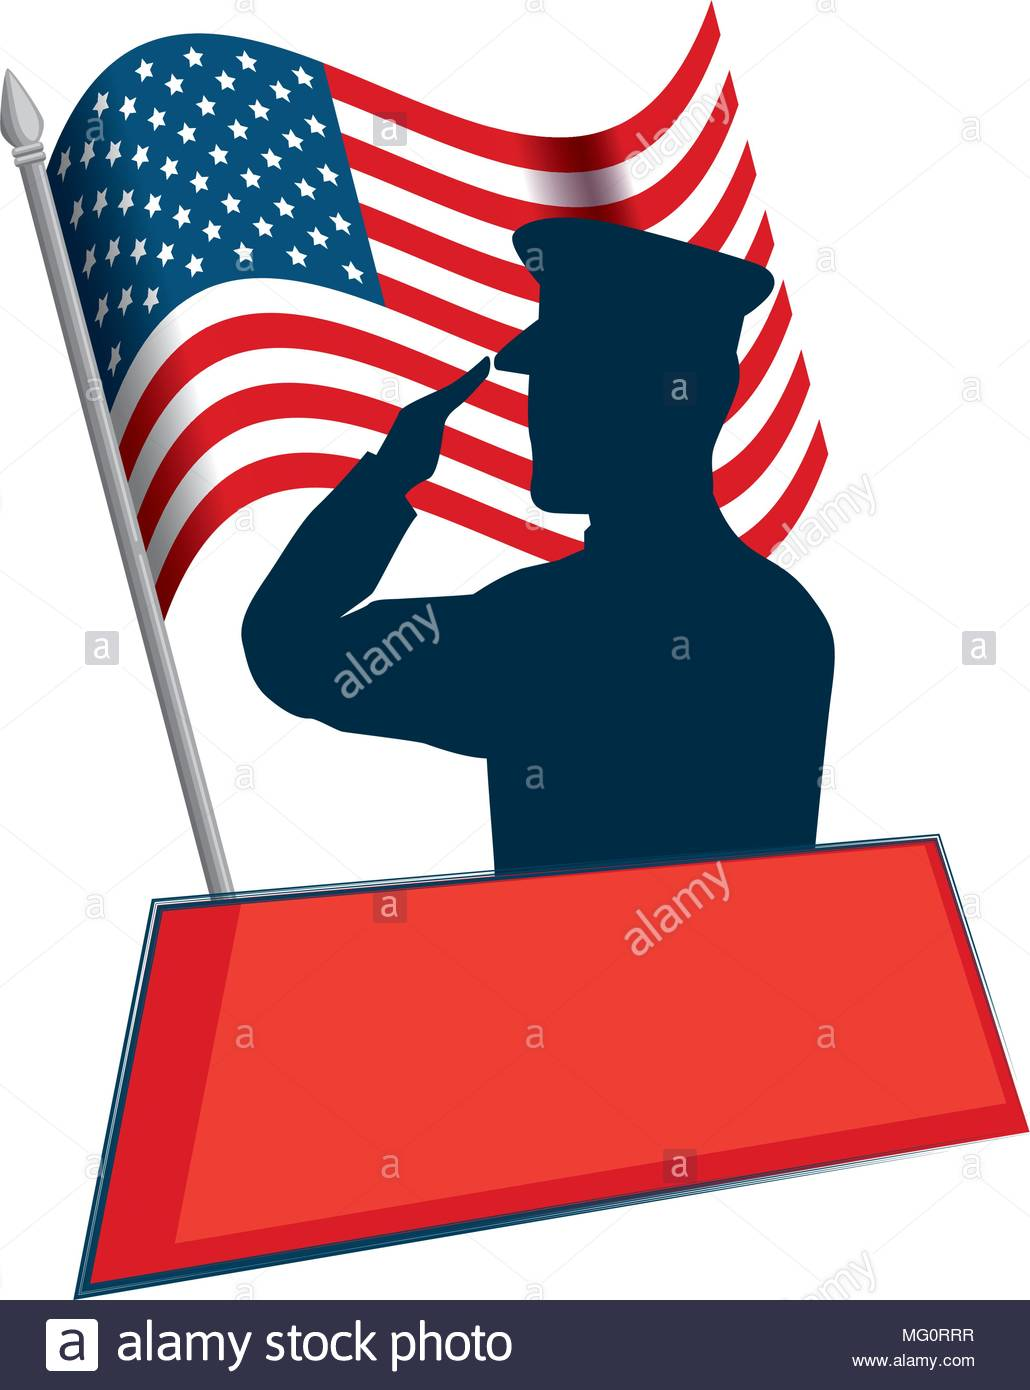 1030x1390 Silhouette Of Military Saluting With Usa Flag Vector Illustration